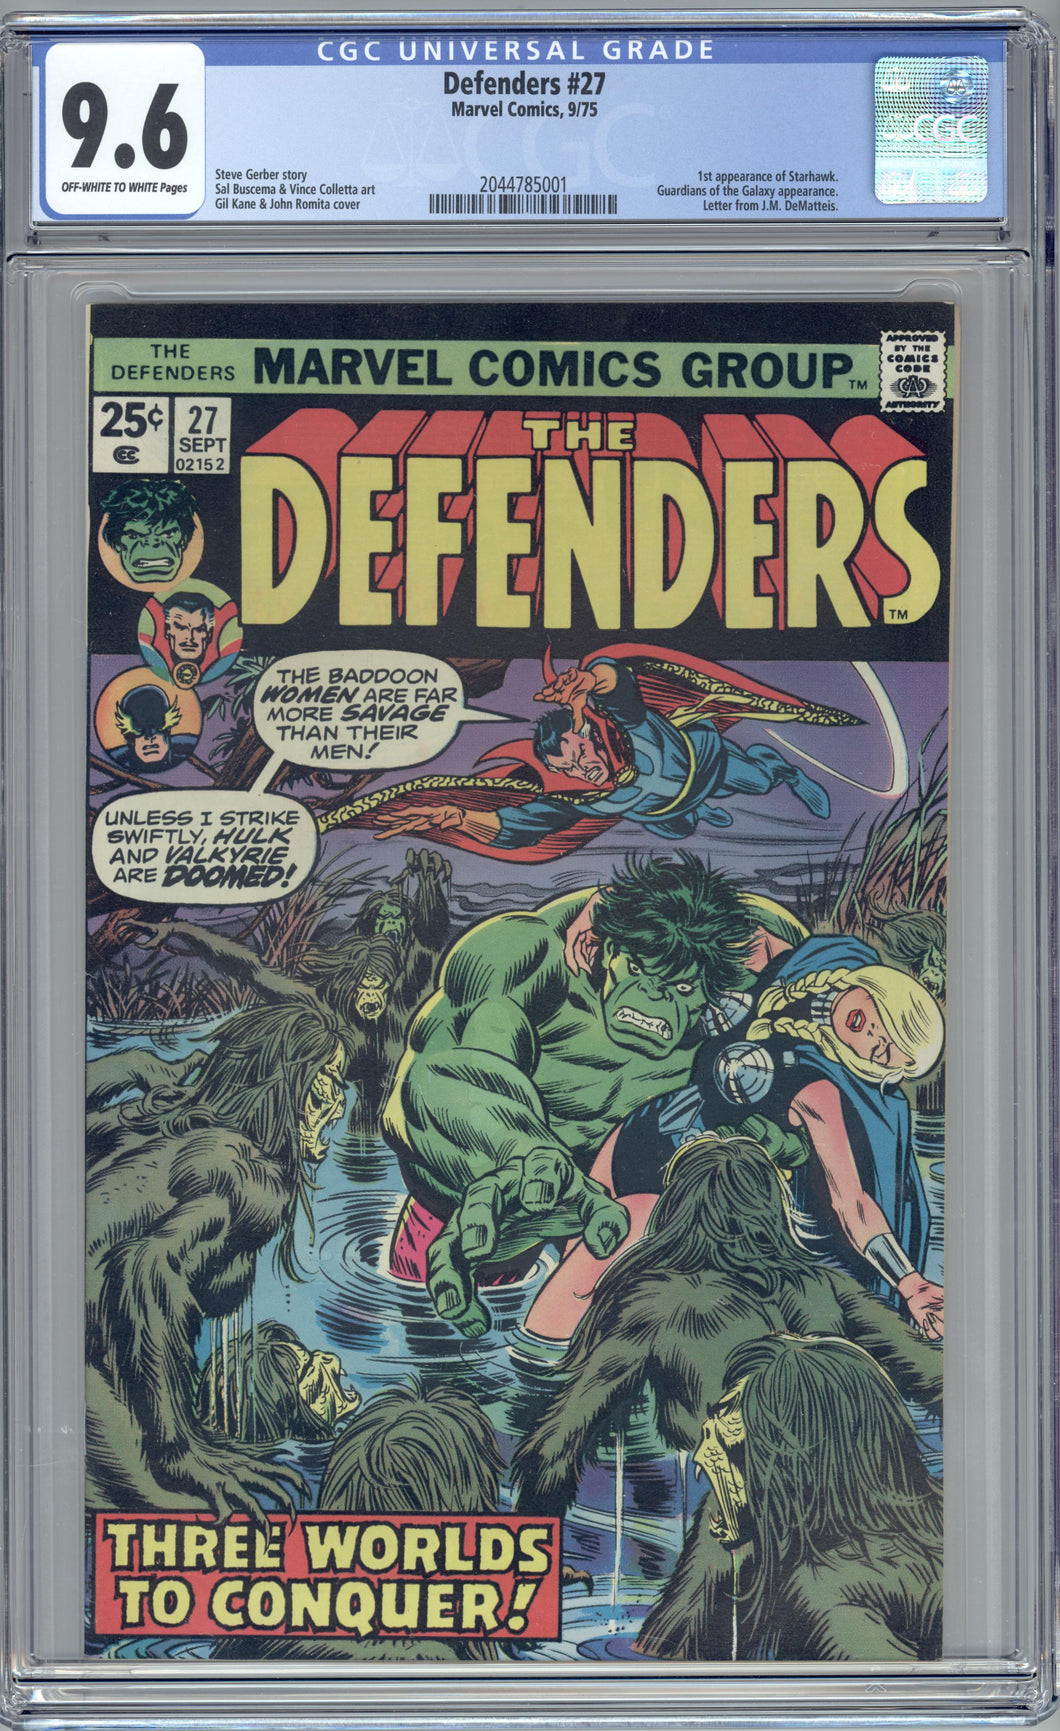 DEFENDERS #27 CGC 9.6 FIRST STARHAWK, Guardians of the Galaxy